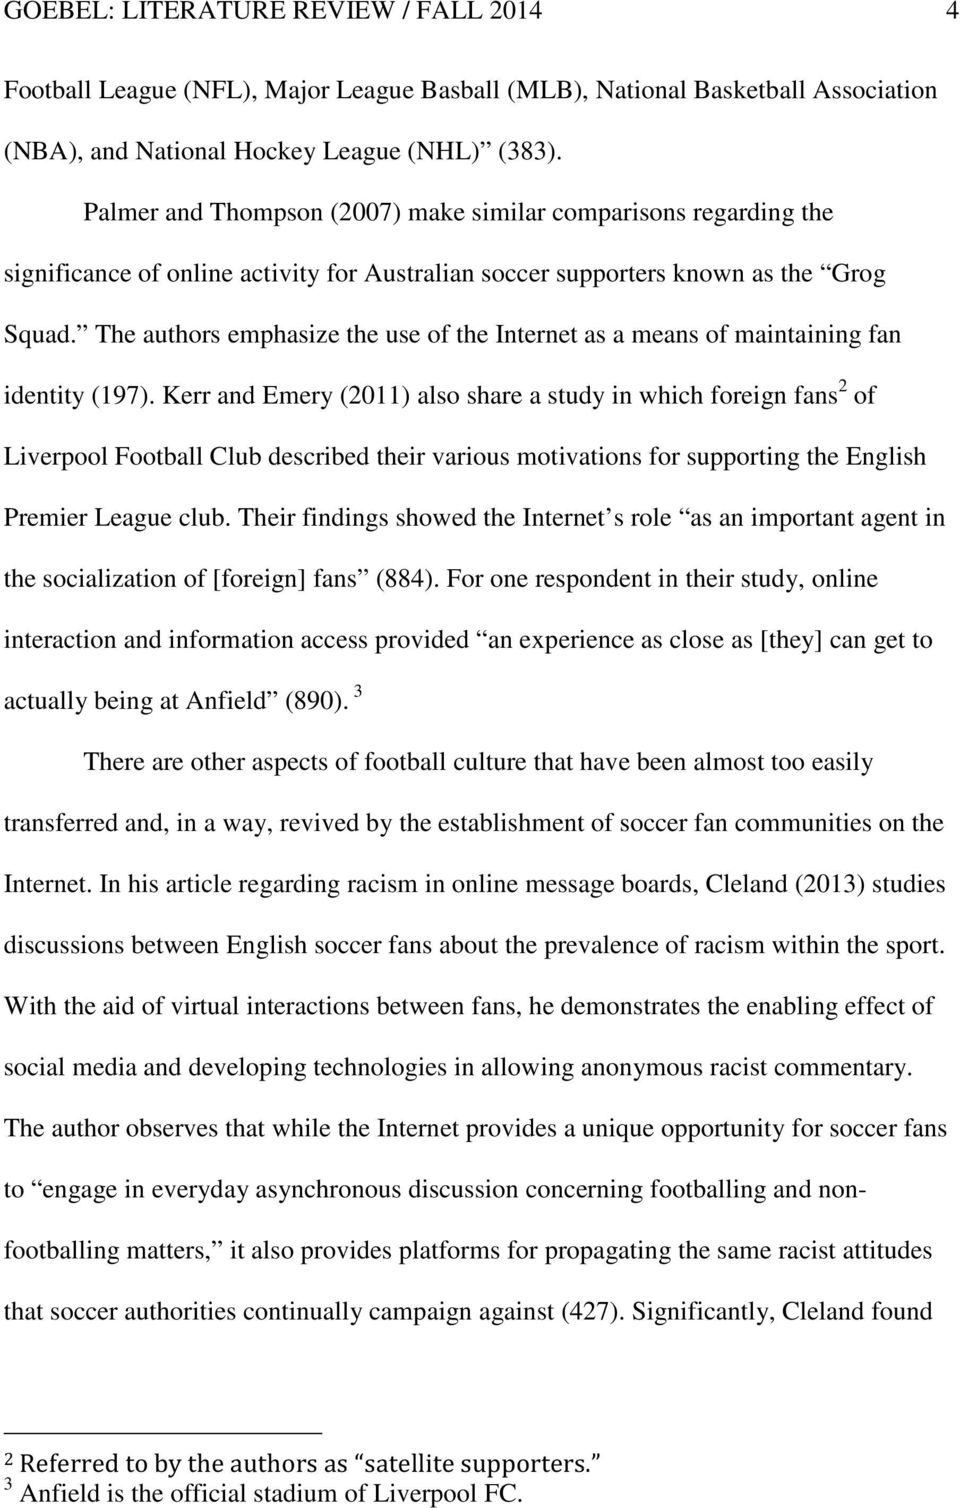 The authors emphasize the use of the Internet as a means of maintaining fan identity (197).